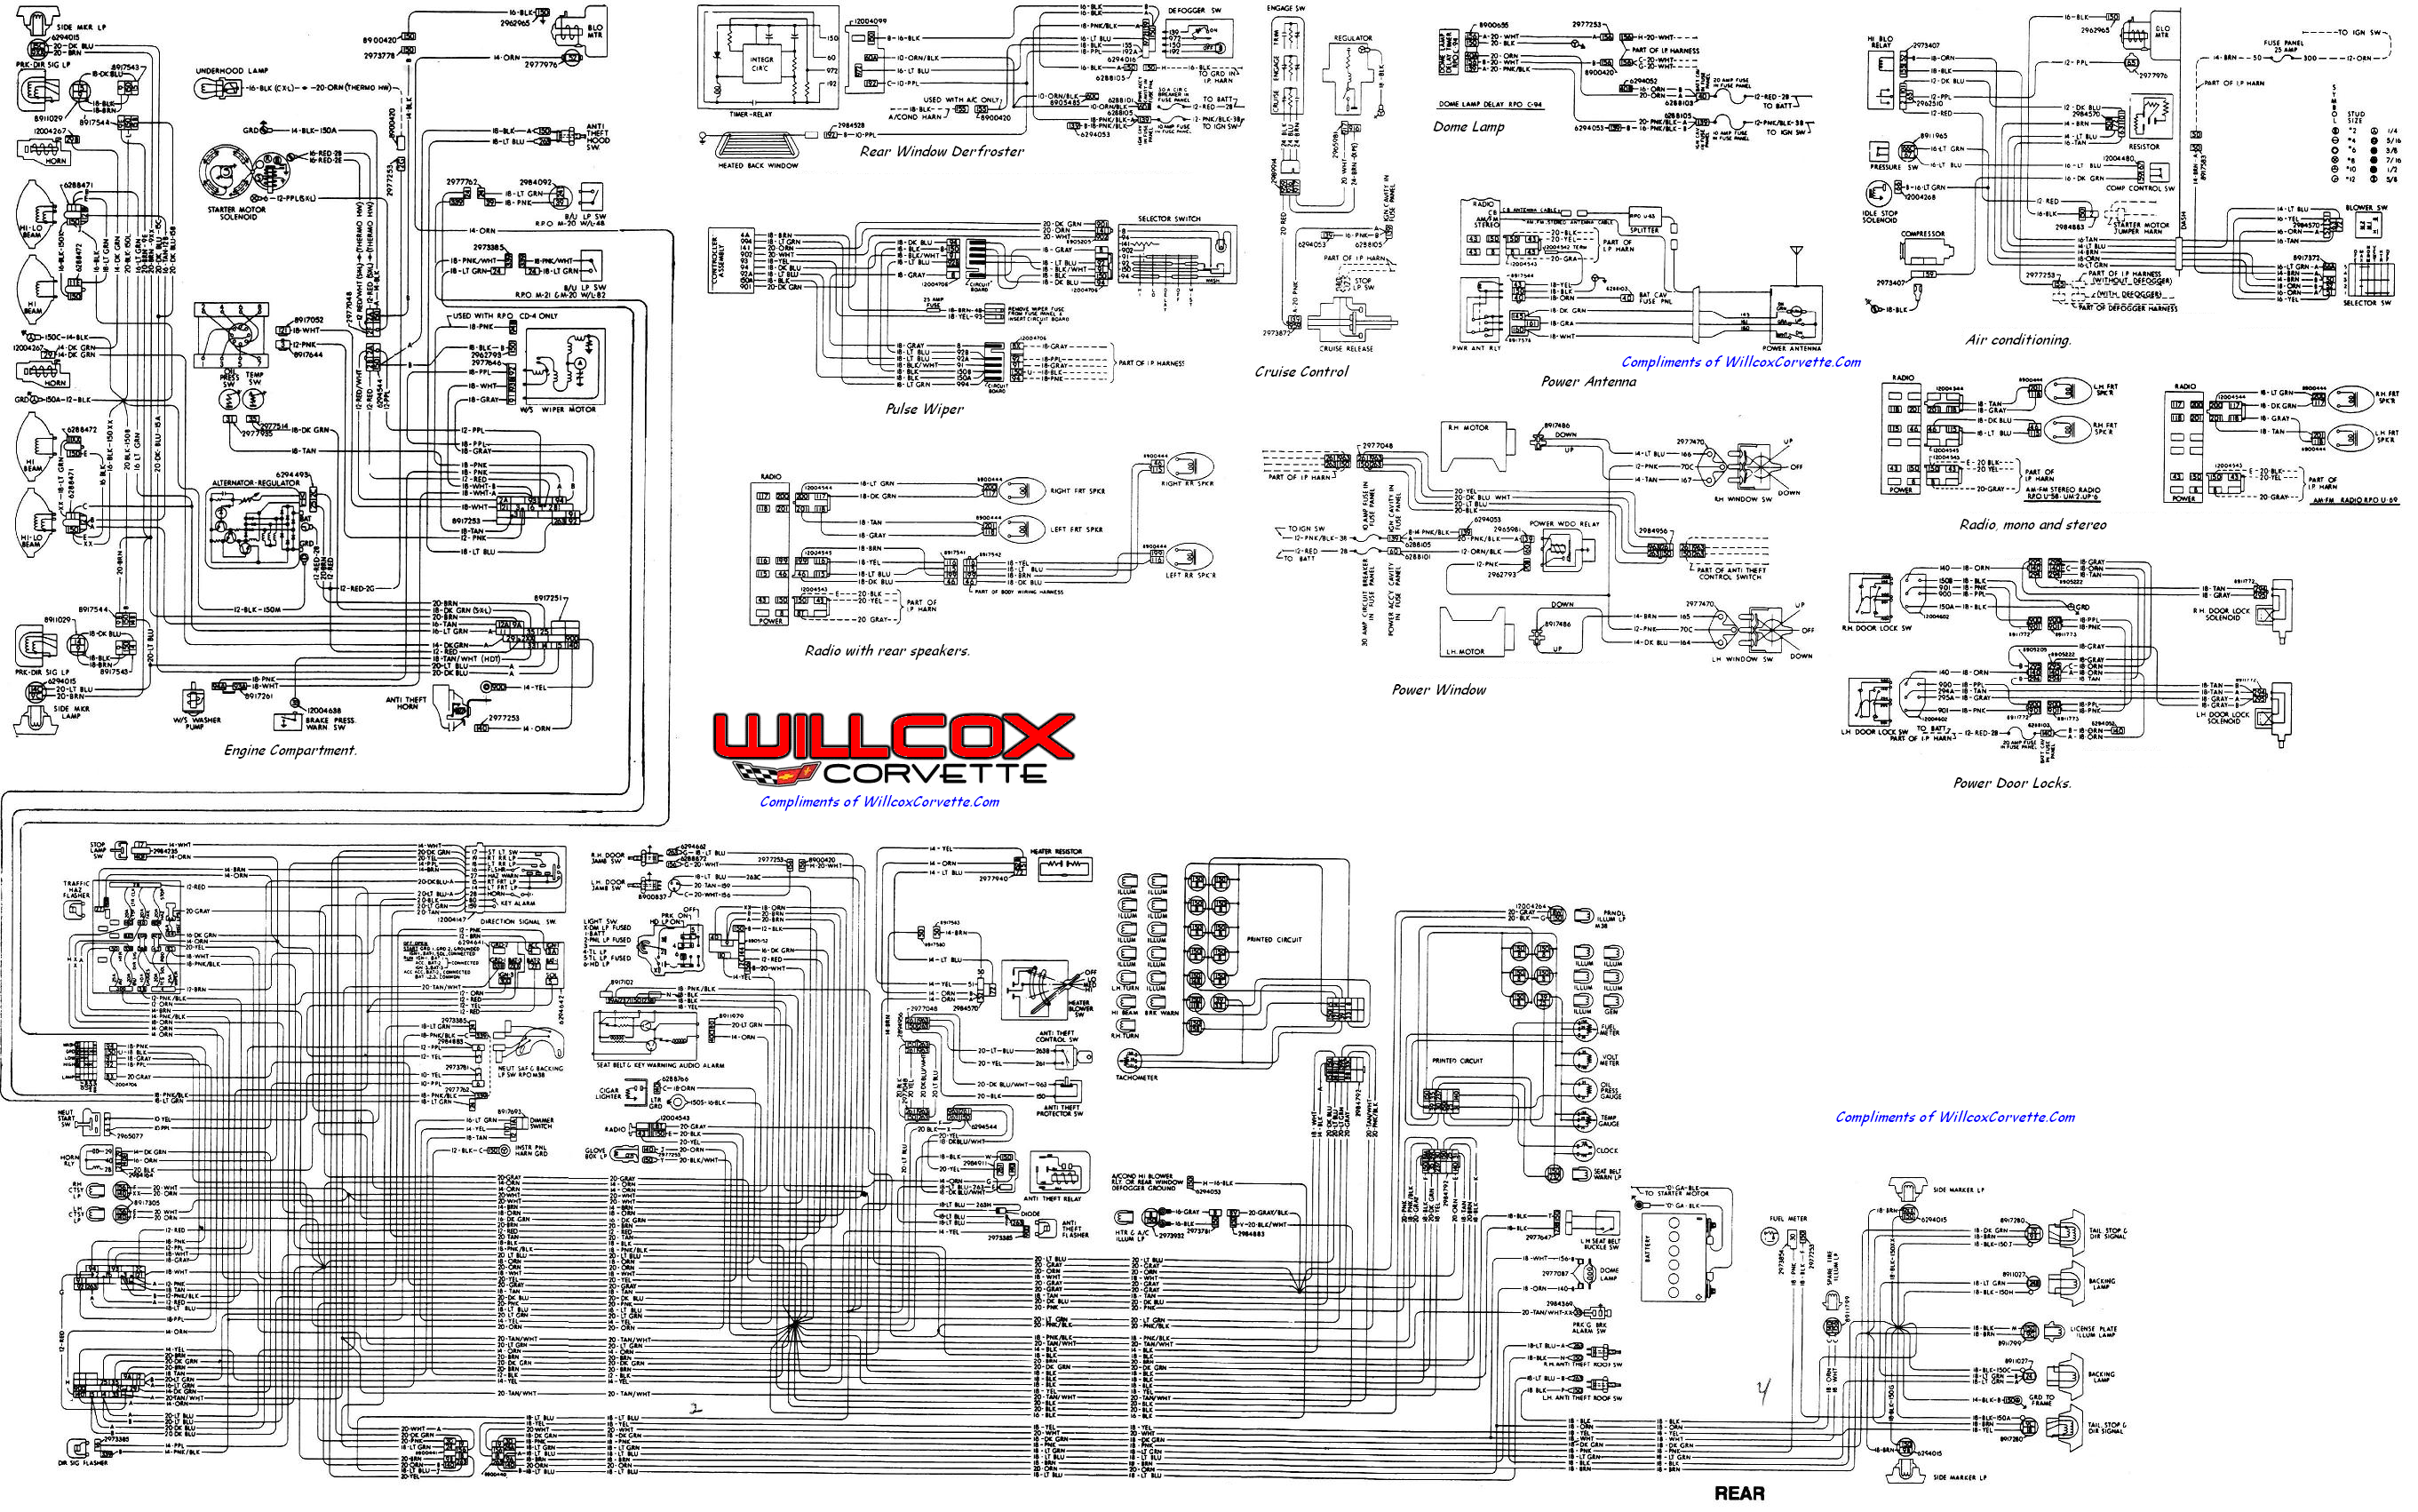 1971 Corvette Radio Wiring Library Chevy Fuse Box Diagram 1964 Power Window Harness Get Free Image Pdf 71